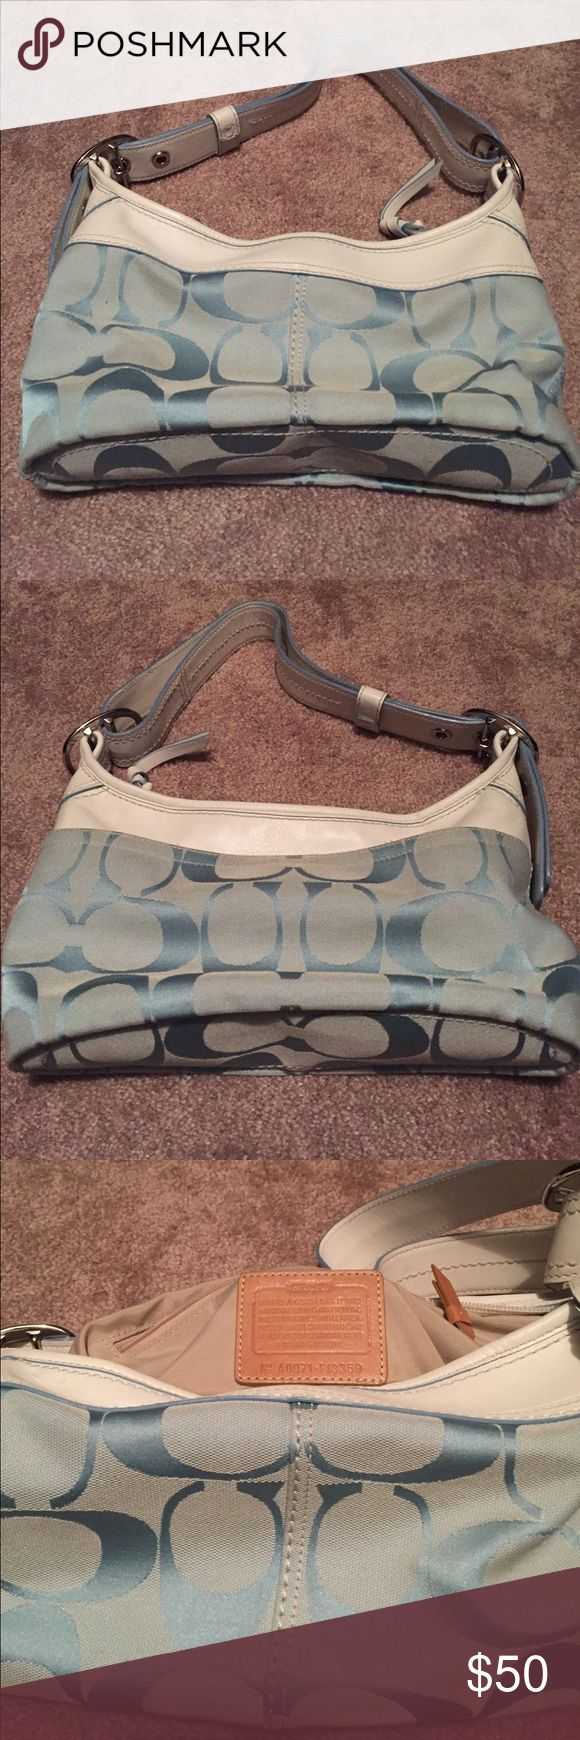 Authentic Coach purse - price reduced! Barely used in excellent condition!! Make me an offer!! Coach Bags Shoulder Bags